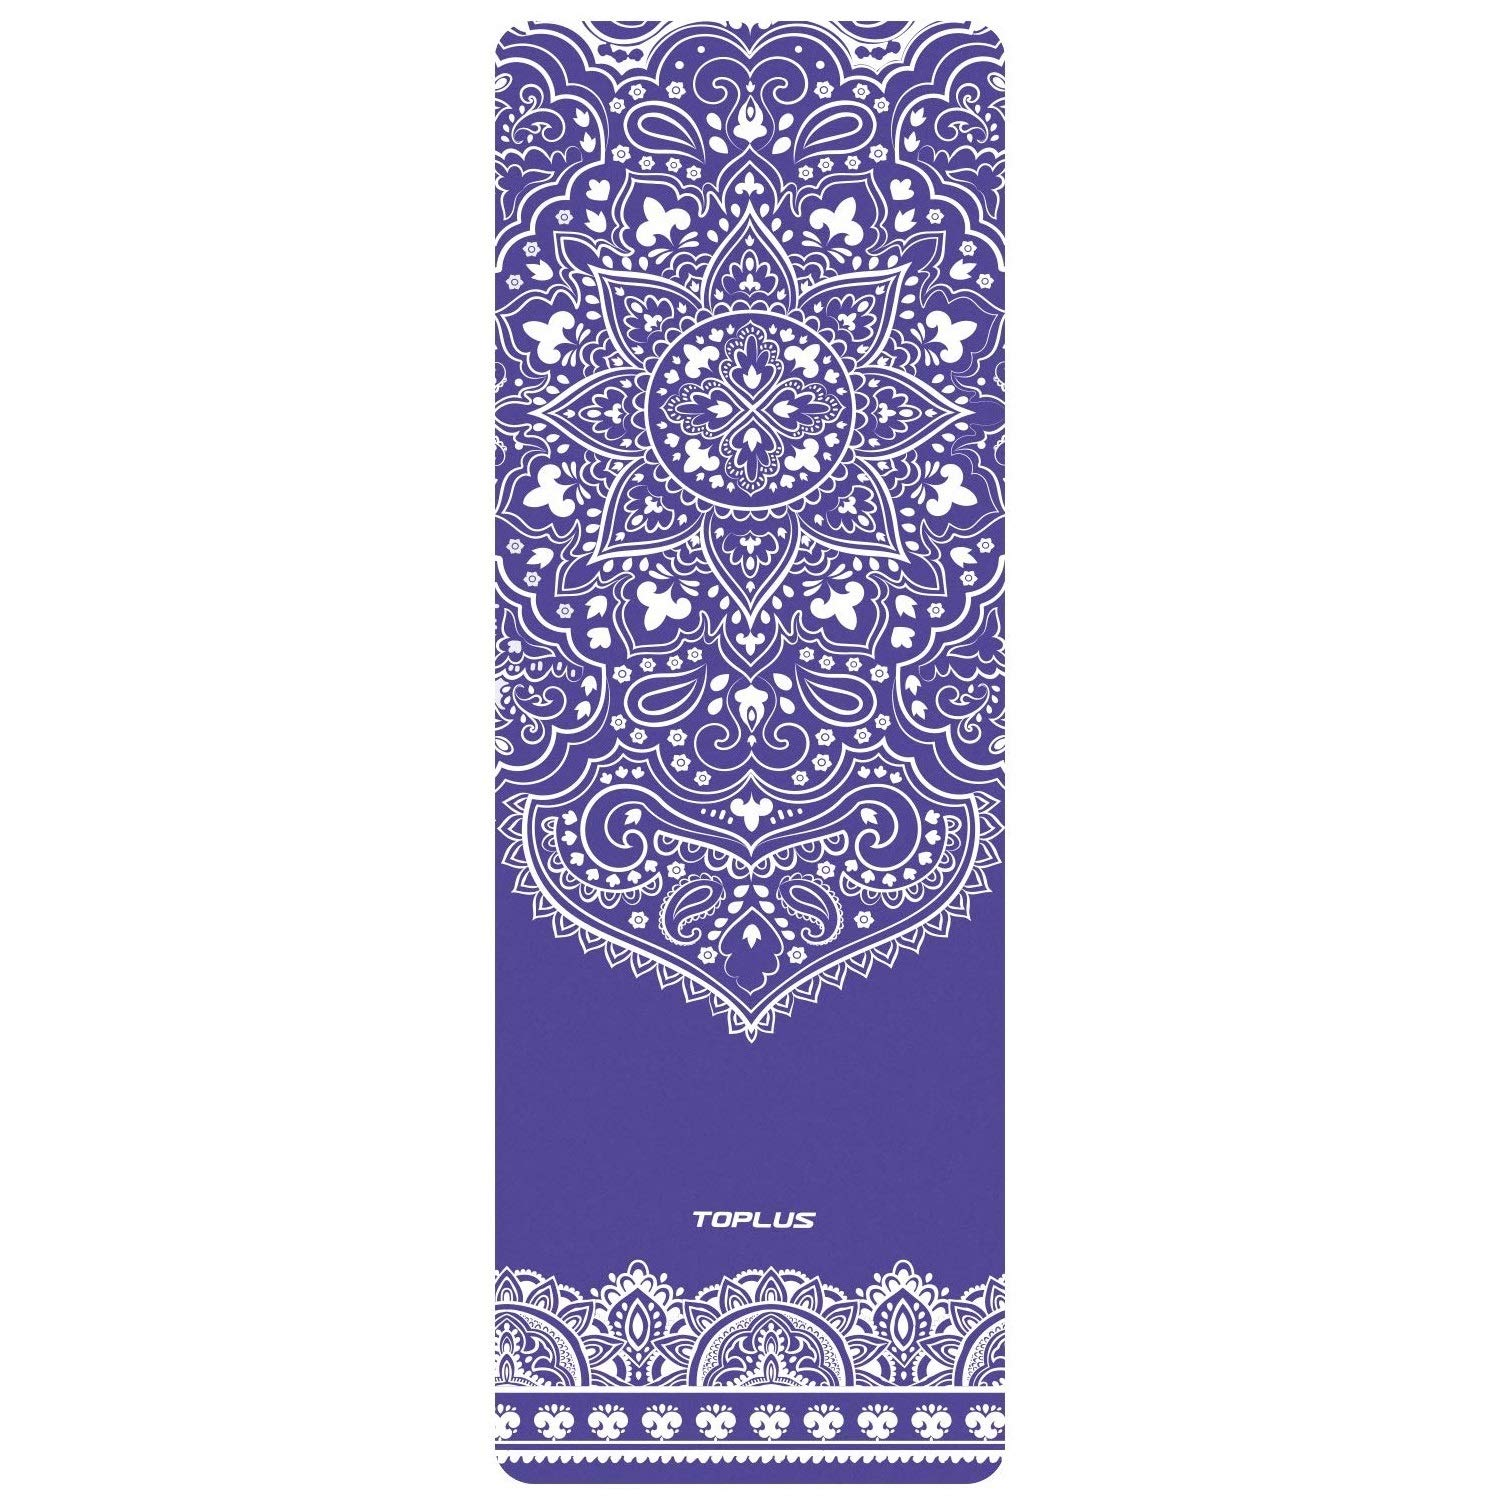 TOPLUS Yoga Mat - Luxury Designer Cooperated - Hot Yoga Mat - Sweat Absorbent Non Slip, Natural Suede Exercise & Fitness Mat for Yoga, Pilates and Floor Exercises, Coming with Gift Box (Blue)